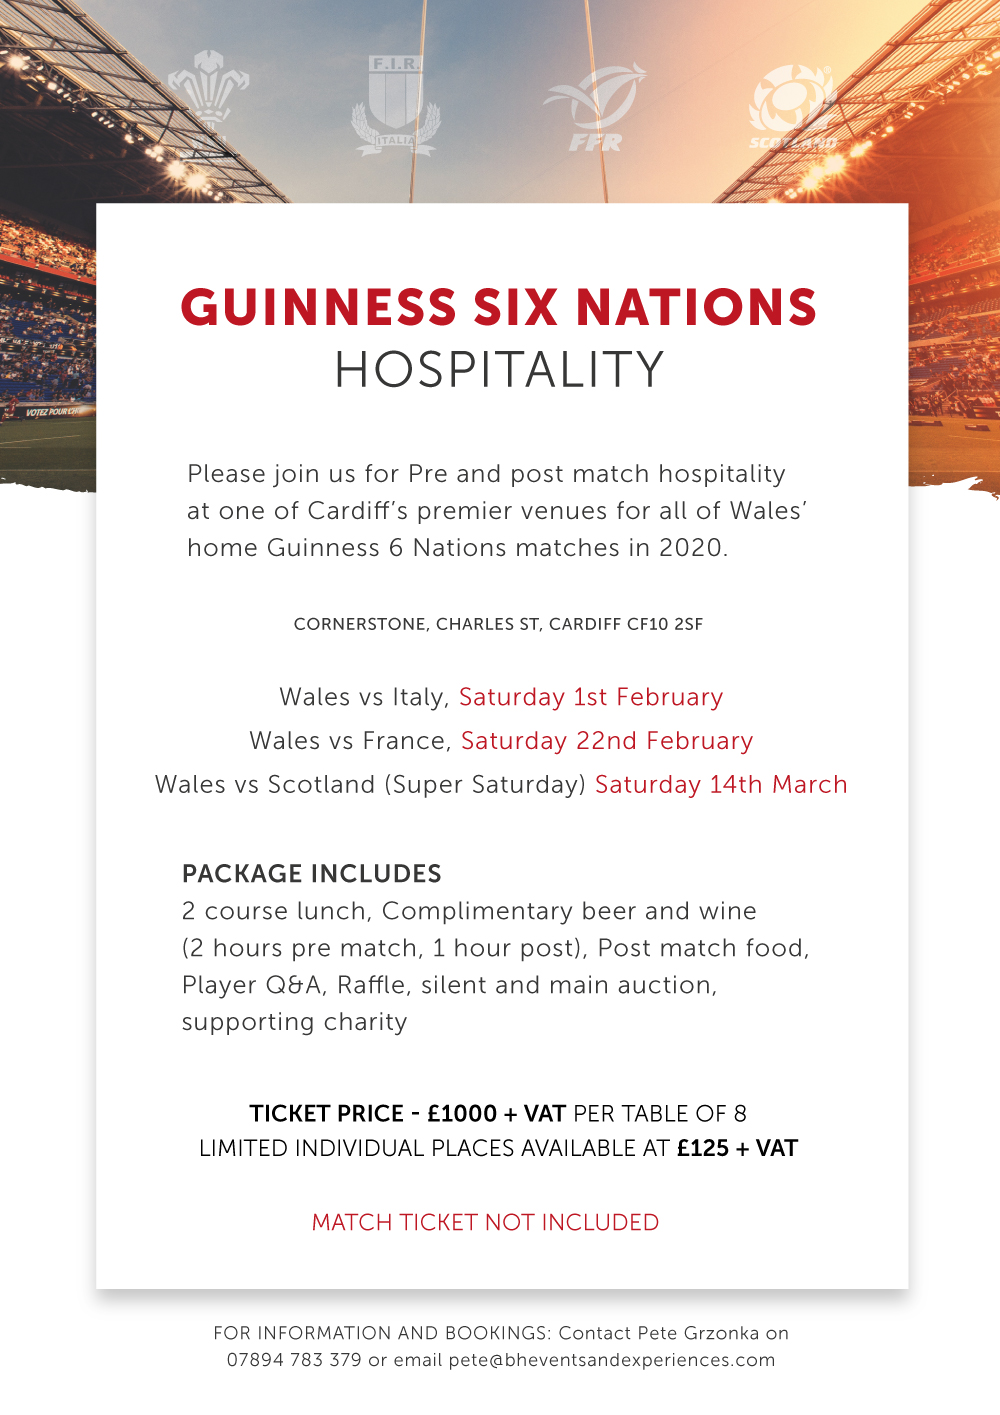 Guinness Six Nations Hospitality